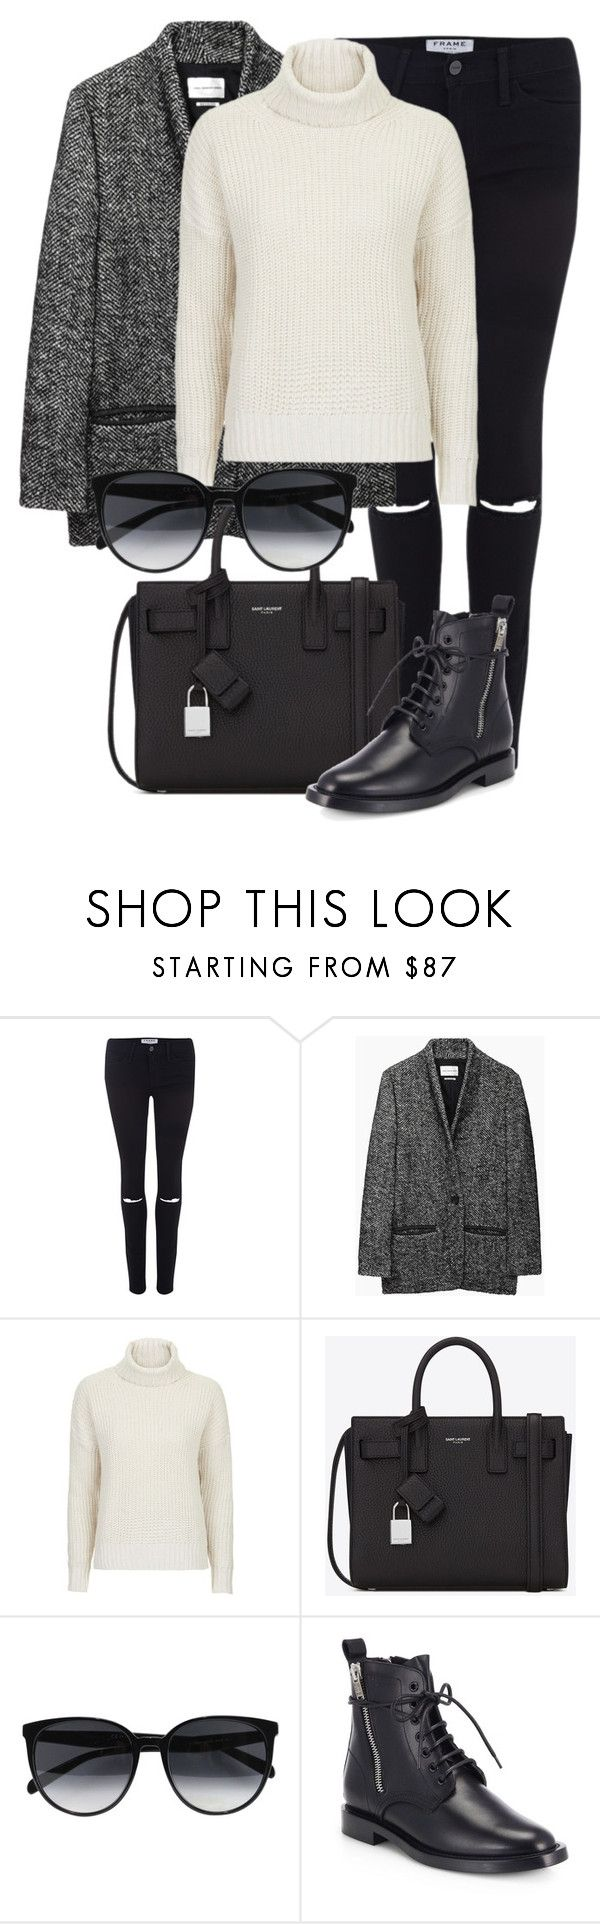 """""""Untitled #1901"""" by annielizjung ❤ liked on Polyvore featuring Frame, Étoile Isabel Marant, Topshop, Yves Saint Laurent and CÉLINE"""